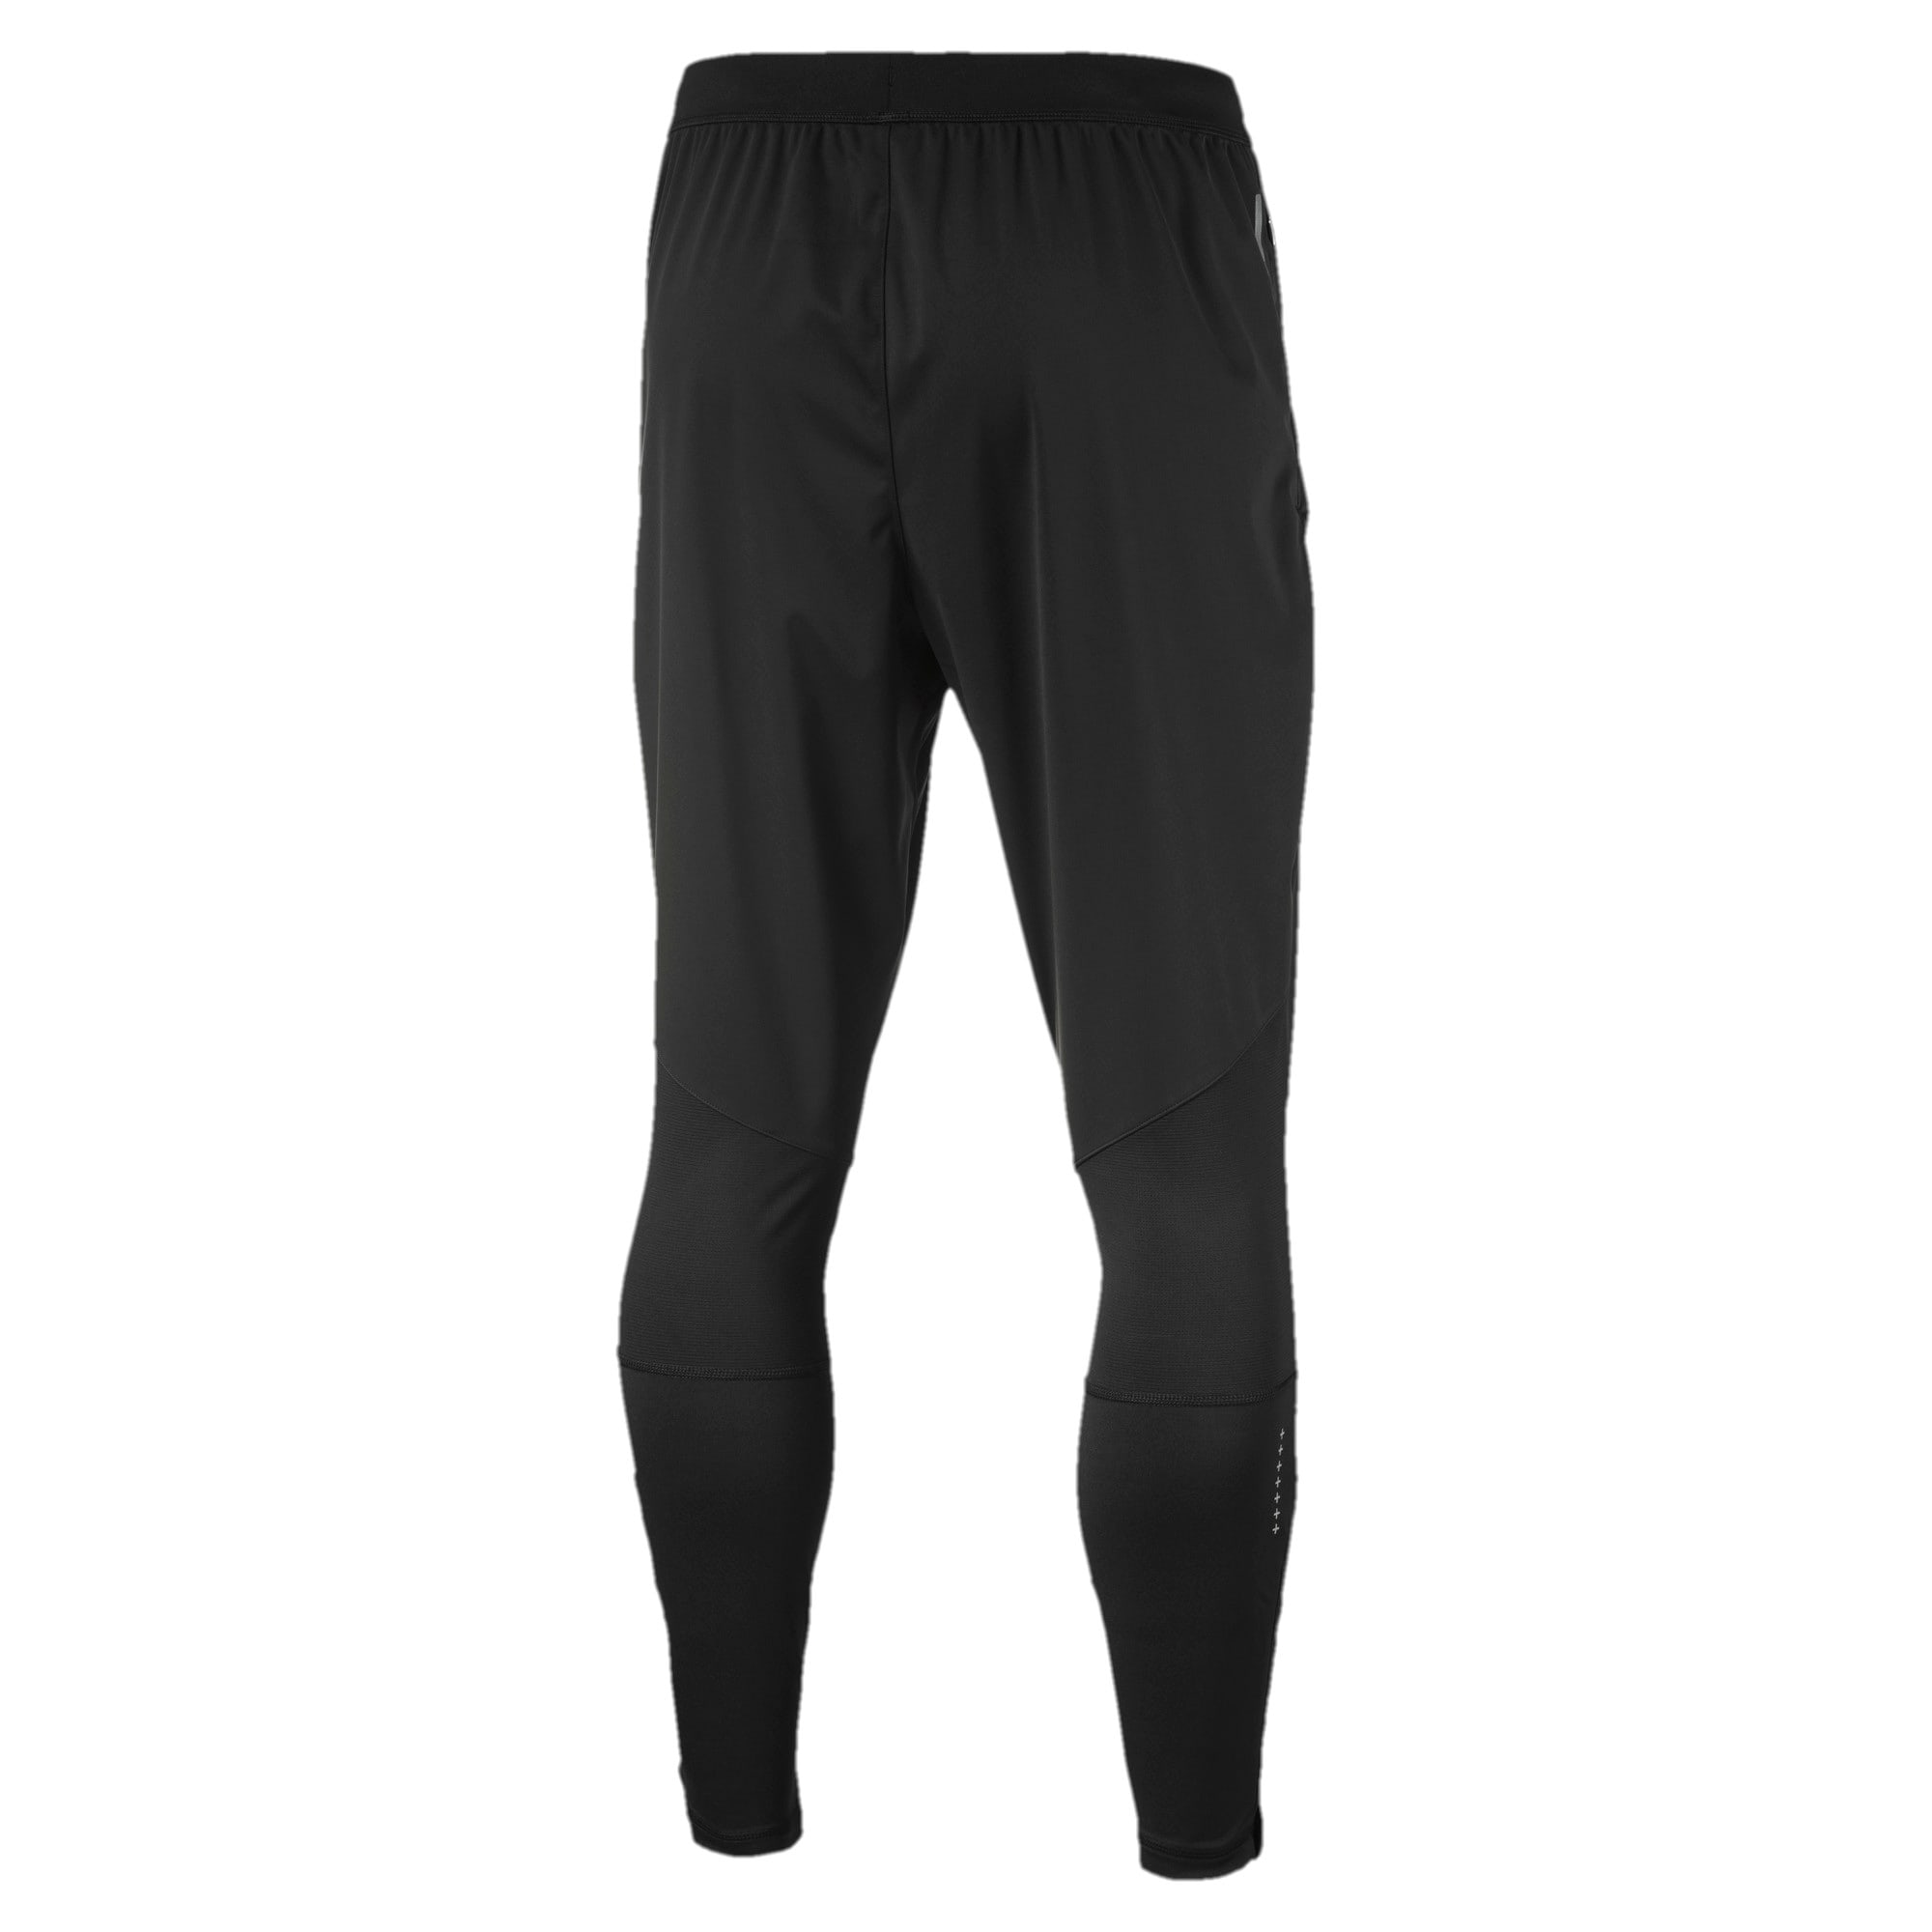 Thumbnail 5 of Get Fast Excite Herren Running Gewebte Hose, Puma Black, medium